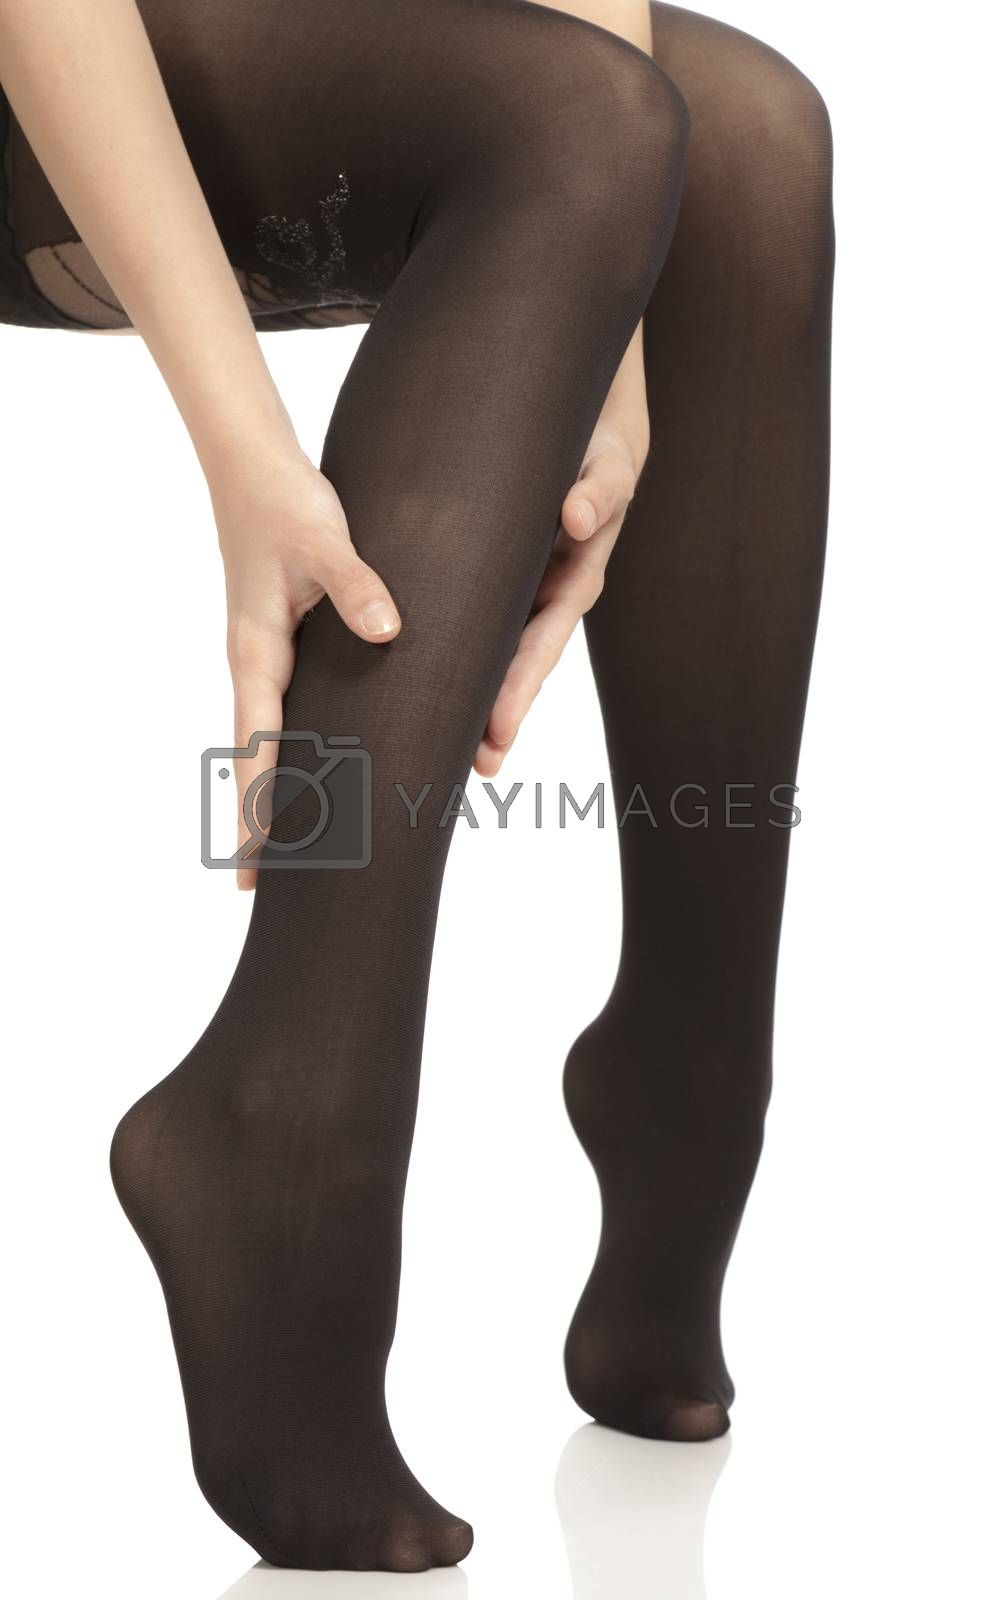 Close-up of female legs with pantyhose. Woman is rubbing her calf to relax pain.